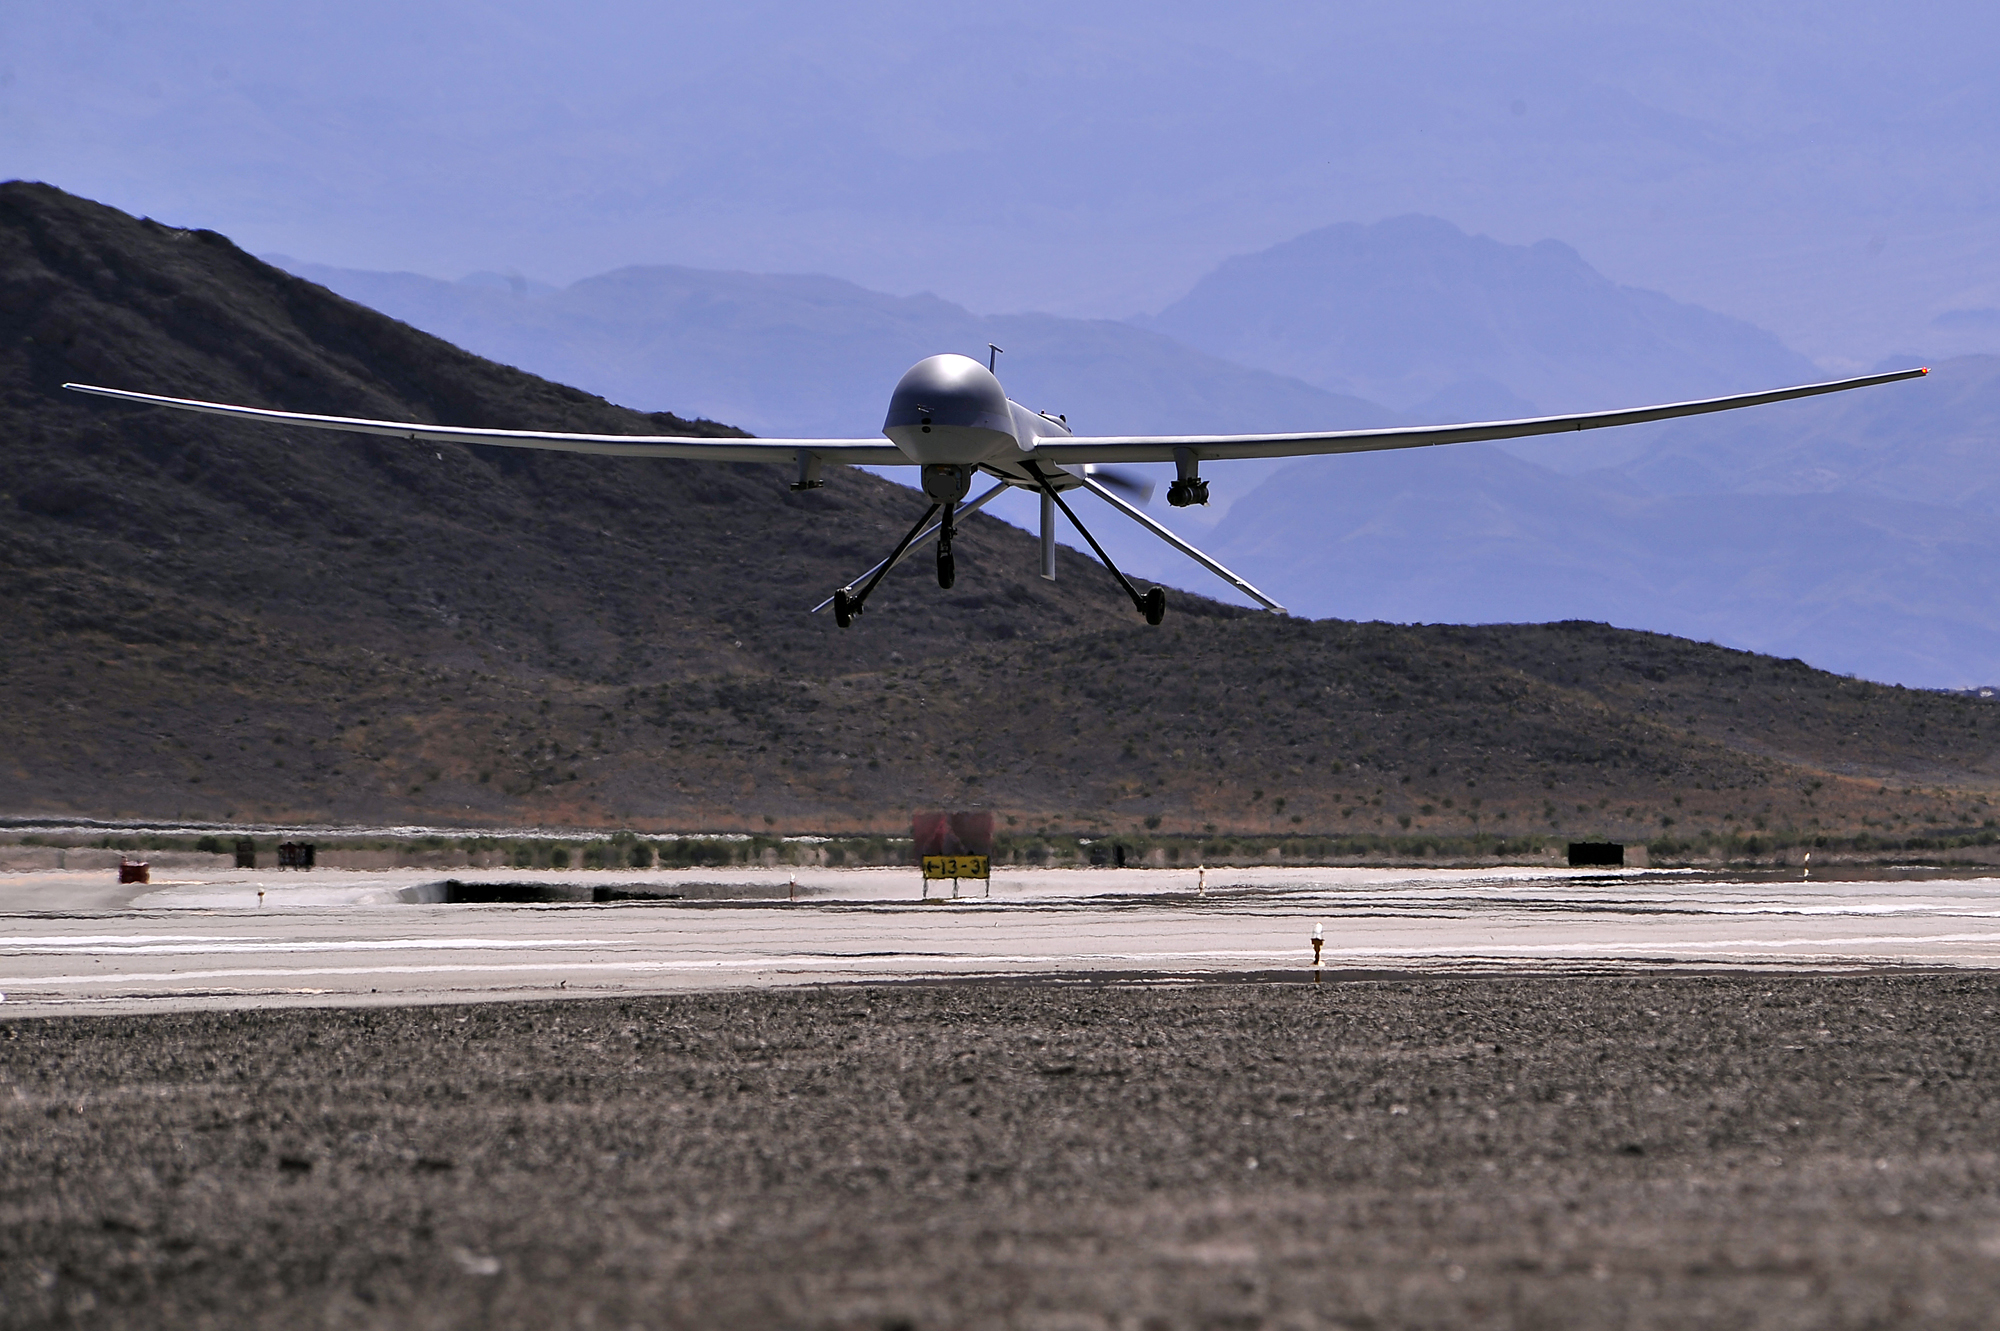 An MQ-1 Predator remotely piloted aircraft, like the one shown here, crashed in a field in Adana, Turkey, on Thursday. (Senior Master Sgt. Paul Holcomb, 432nd Air Expeditionary Wing, Air Force)